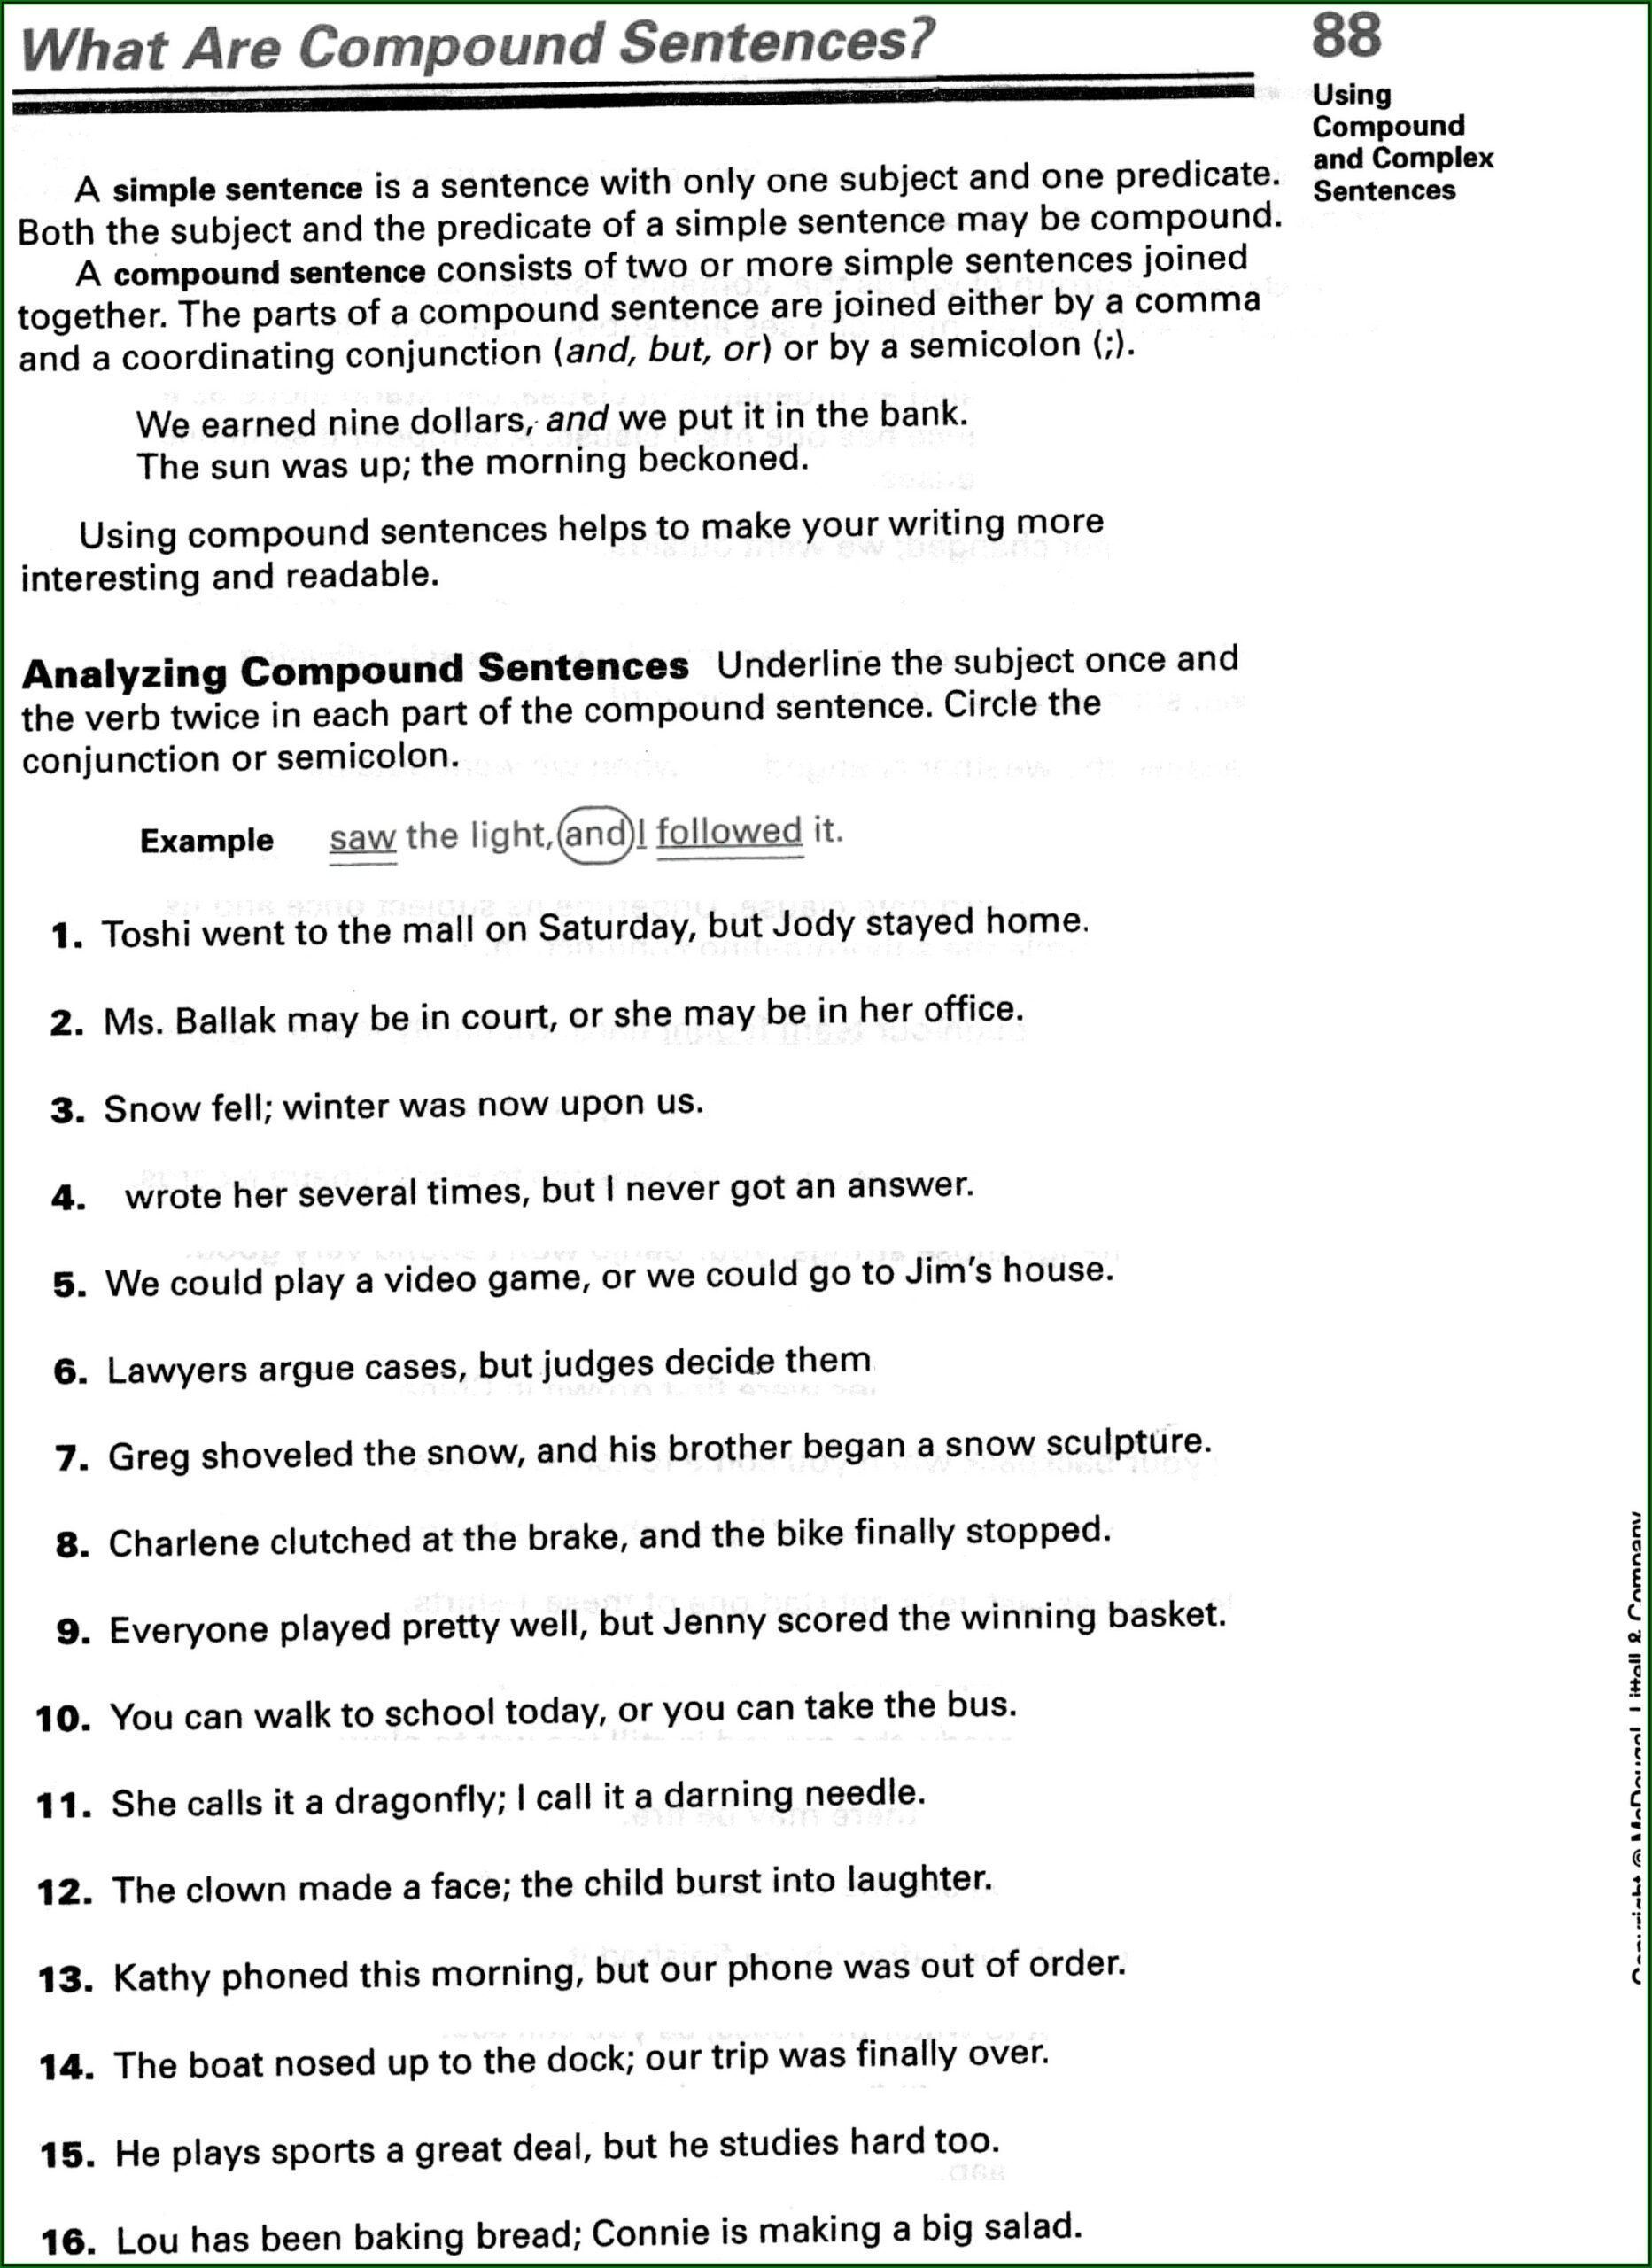 Worksheet On Simple Compound And Complex Sentence